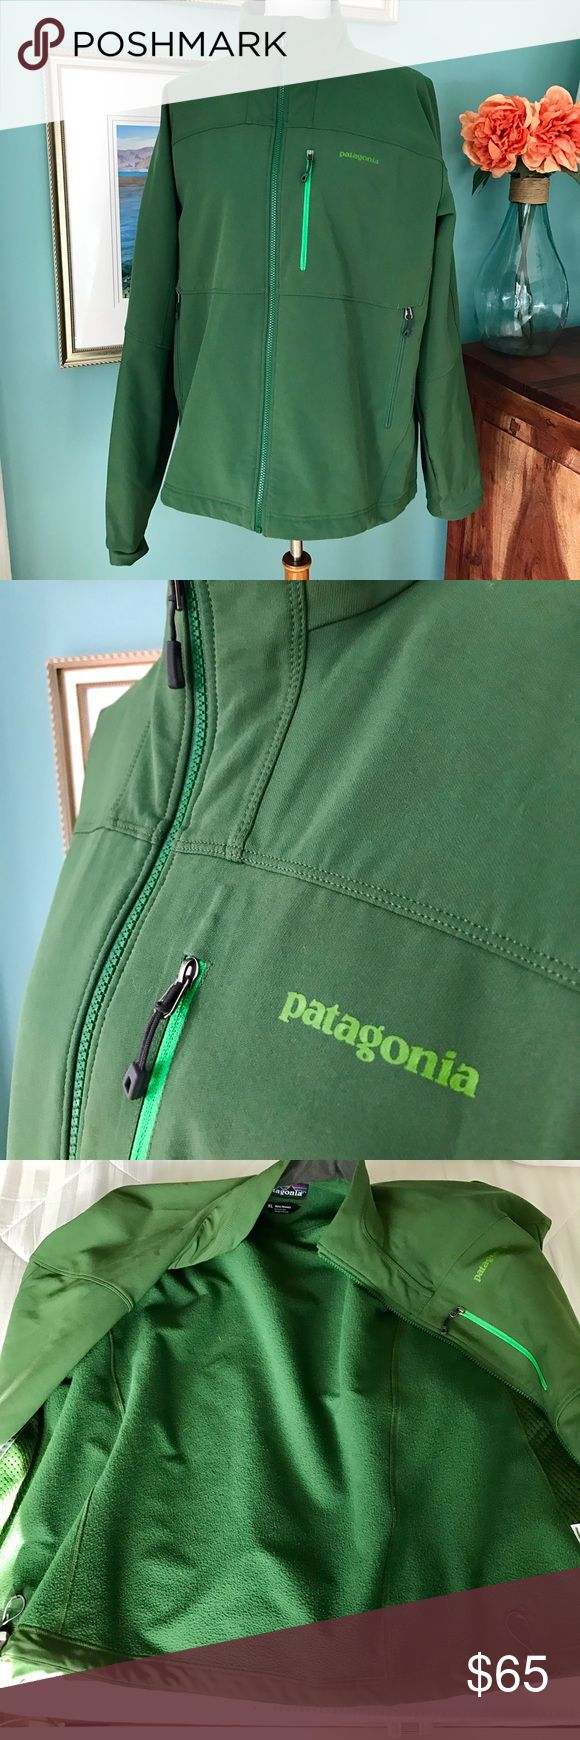 Patagonia Men's Jacket EUC EUC Men's Patagonia jacket.  Fleece lined. Patagonia Jackets & Coats